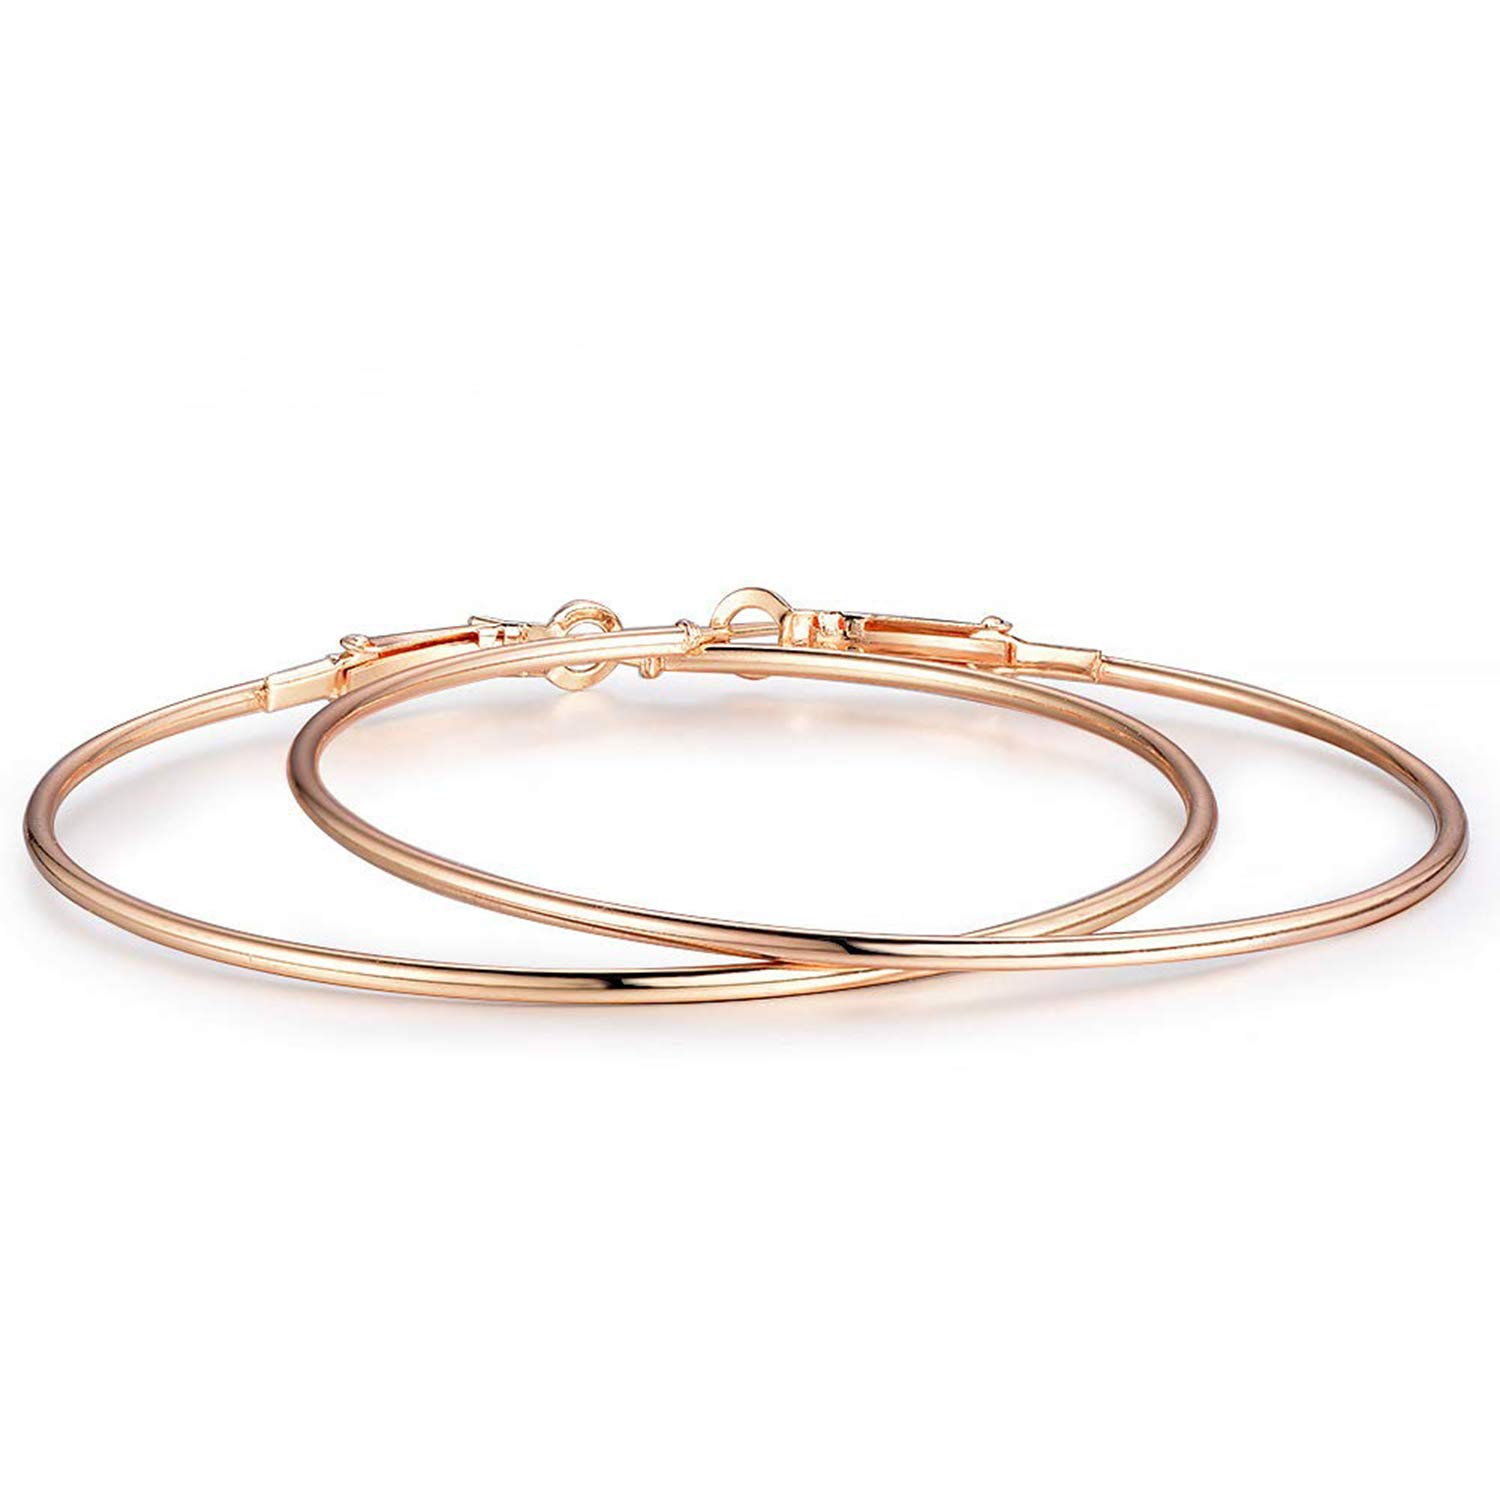 Hoop Earrings Gold Plated Rose Gold Plated Silver 50mm J.F/ée 3 Pairs of 1.96